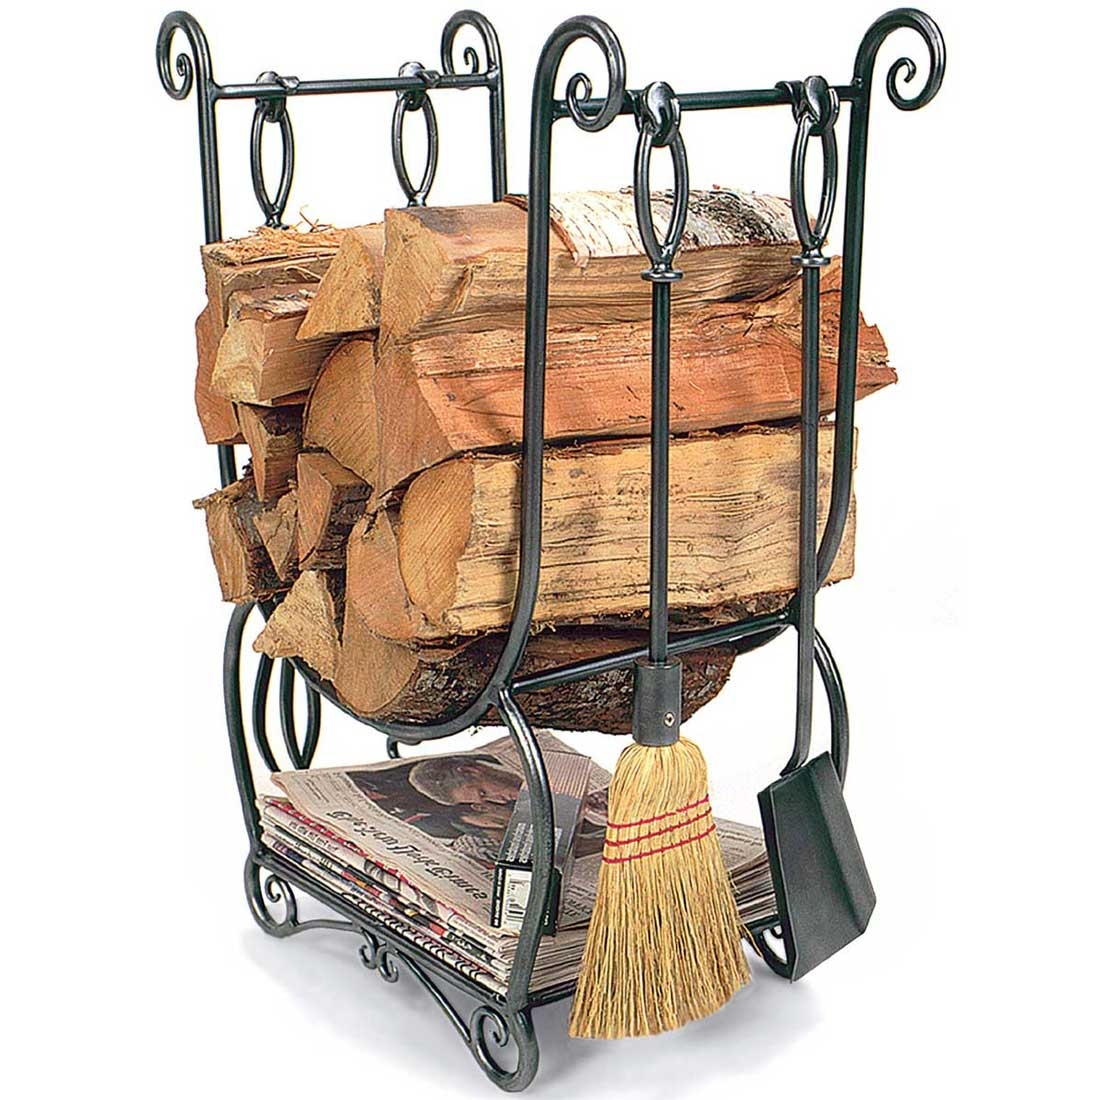 The Country Hearth Wood Holder and fireplace tool set does it all. Store your wood